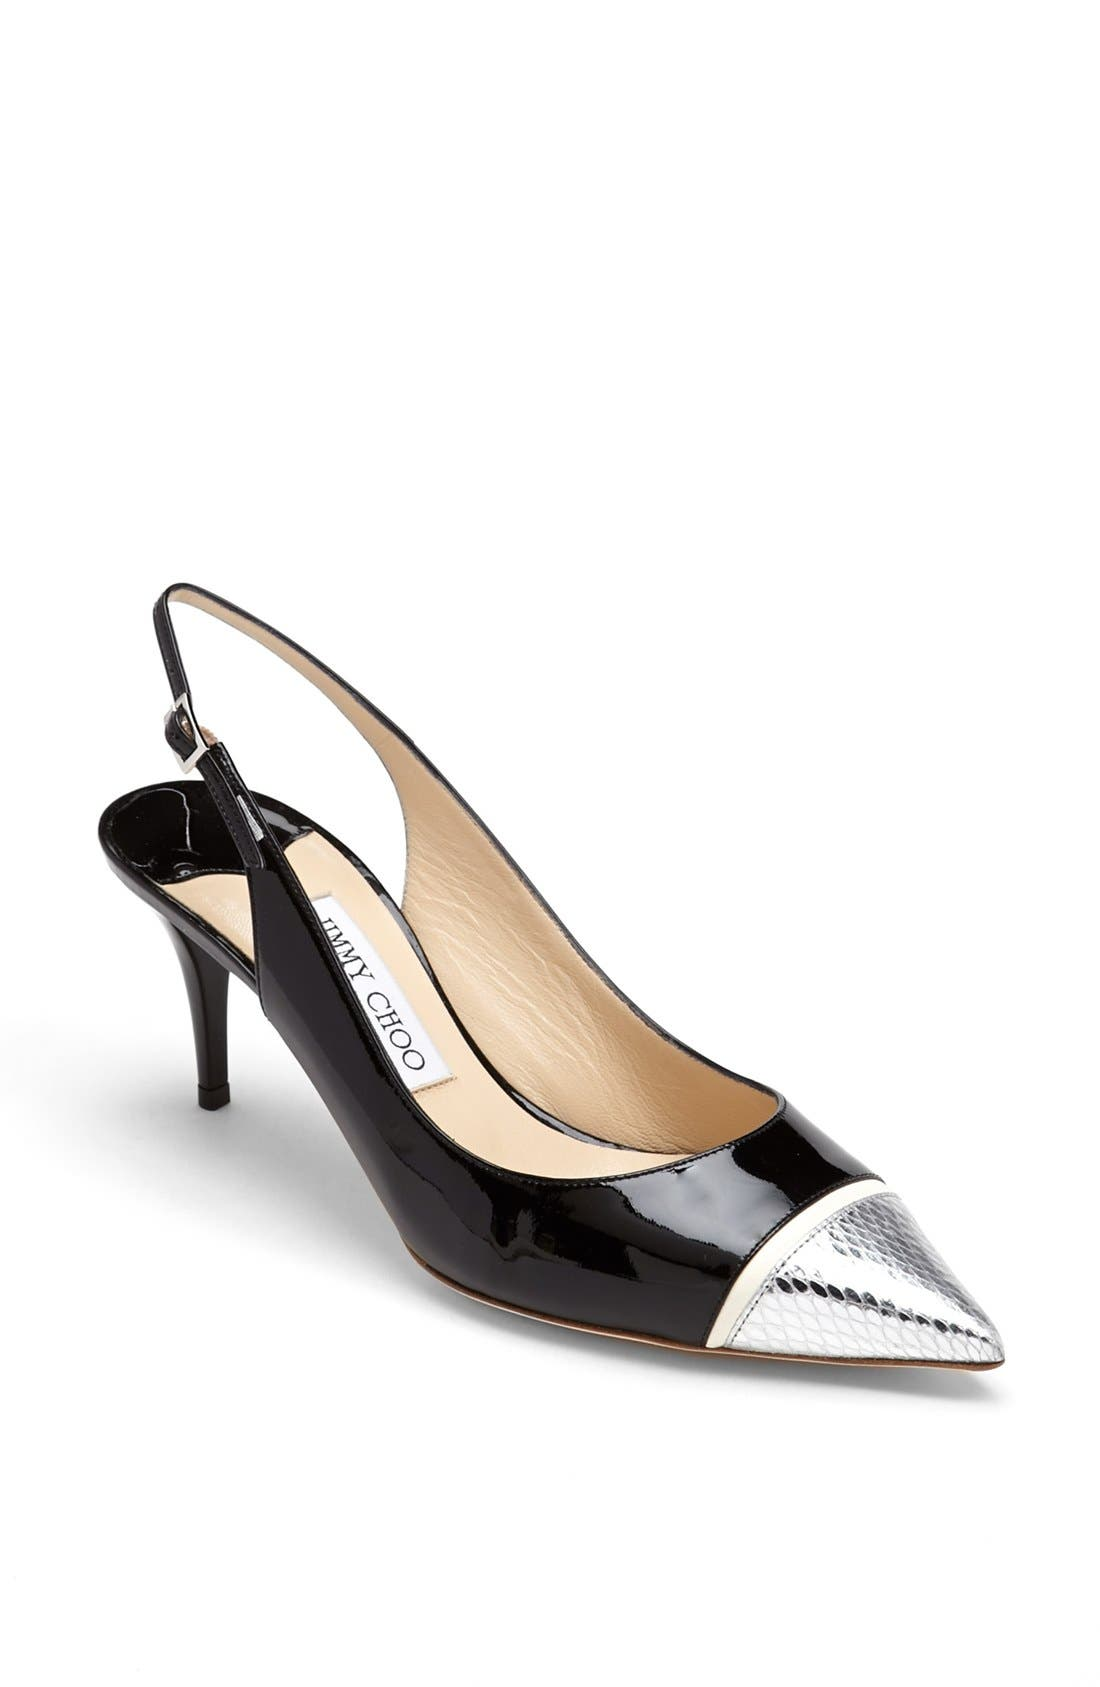 Main Image - Jimmy Choo 'Acapulco' Pump